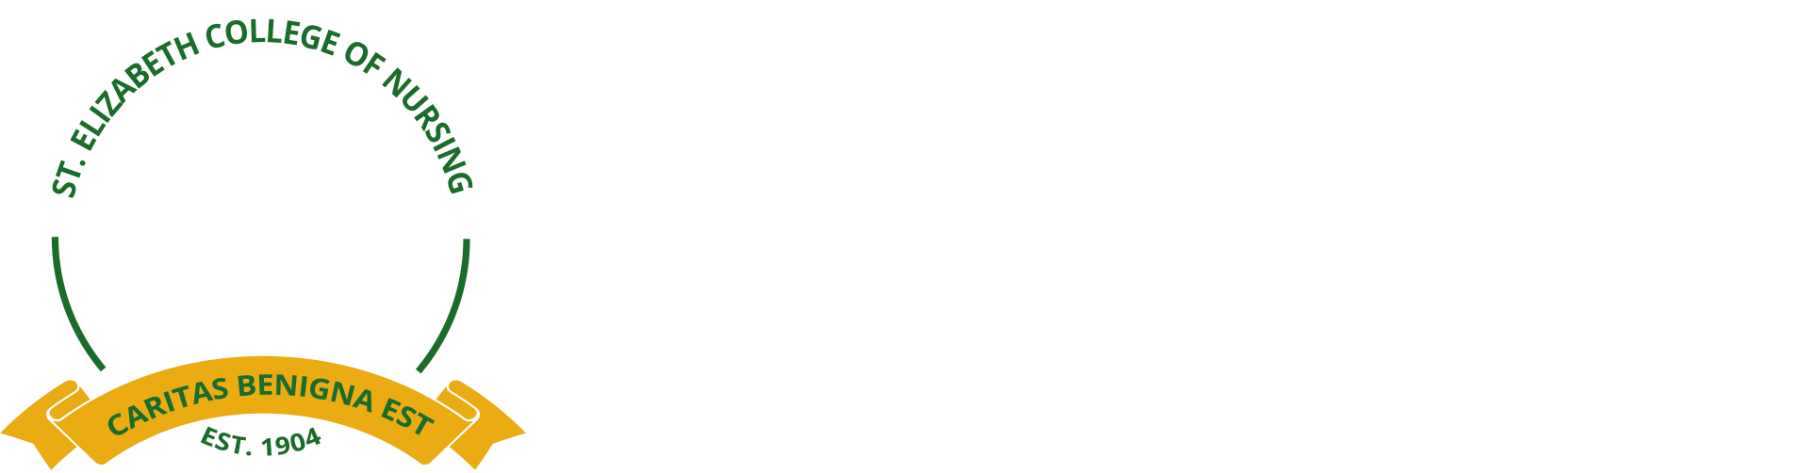 St. Elizabeth College of Nursing